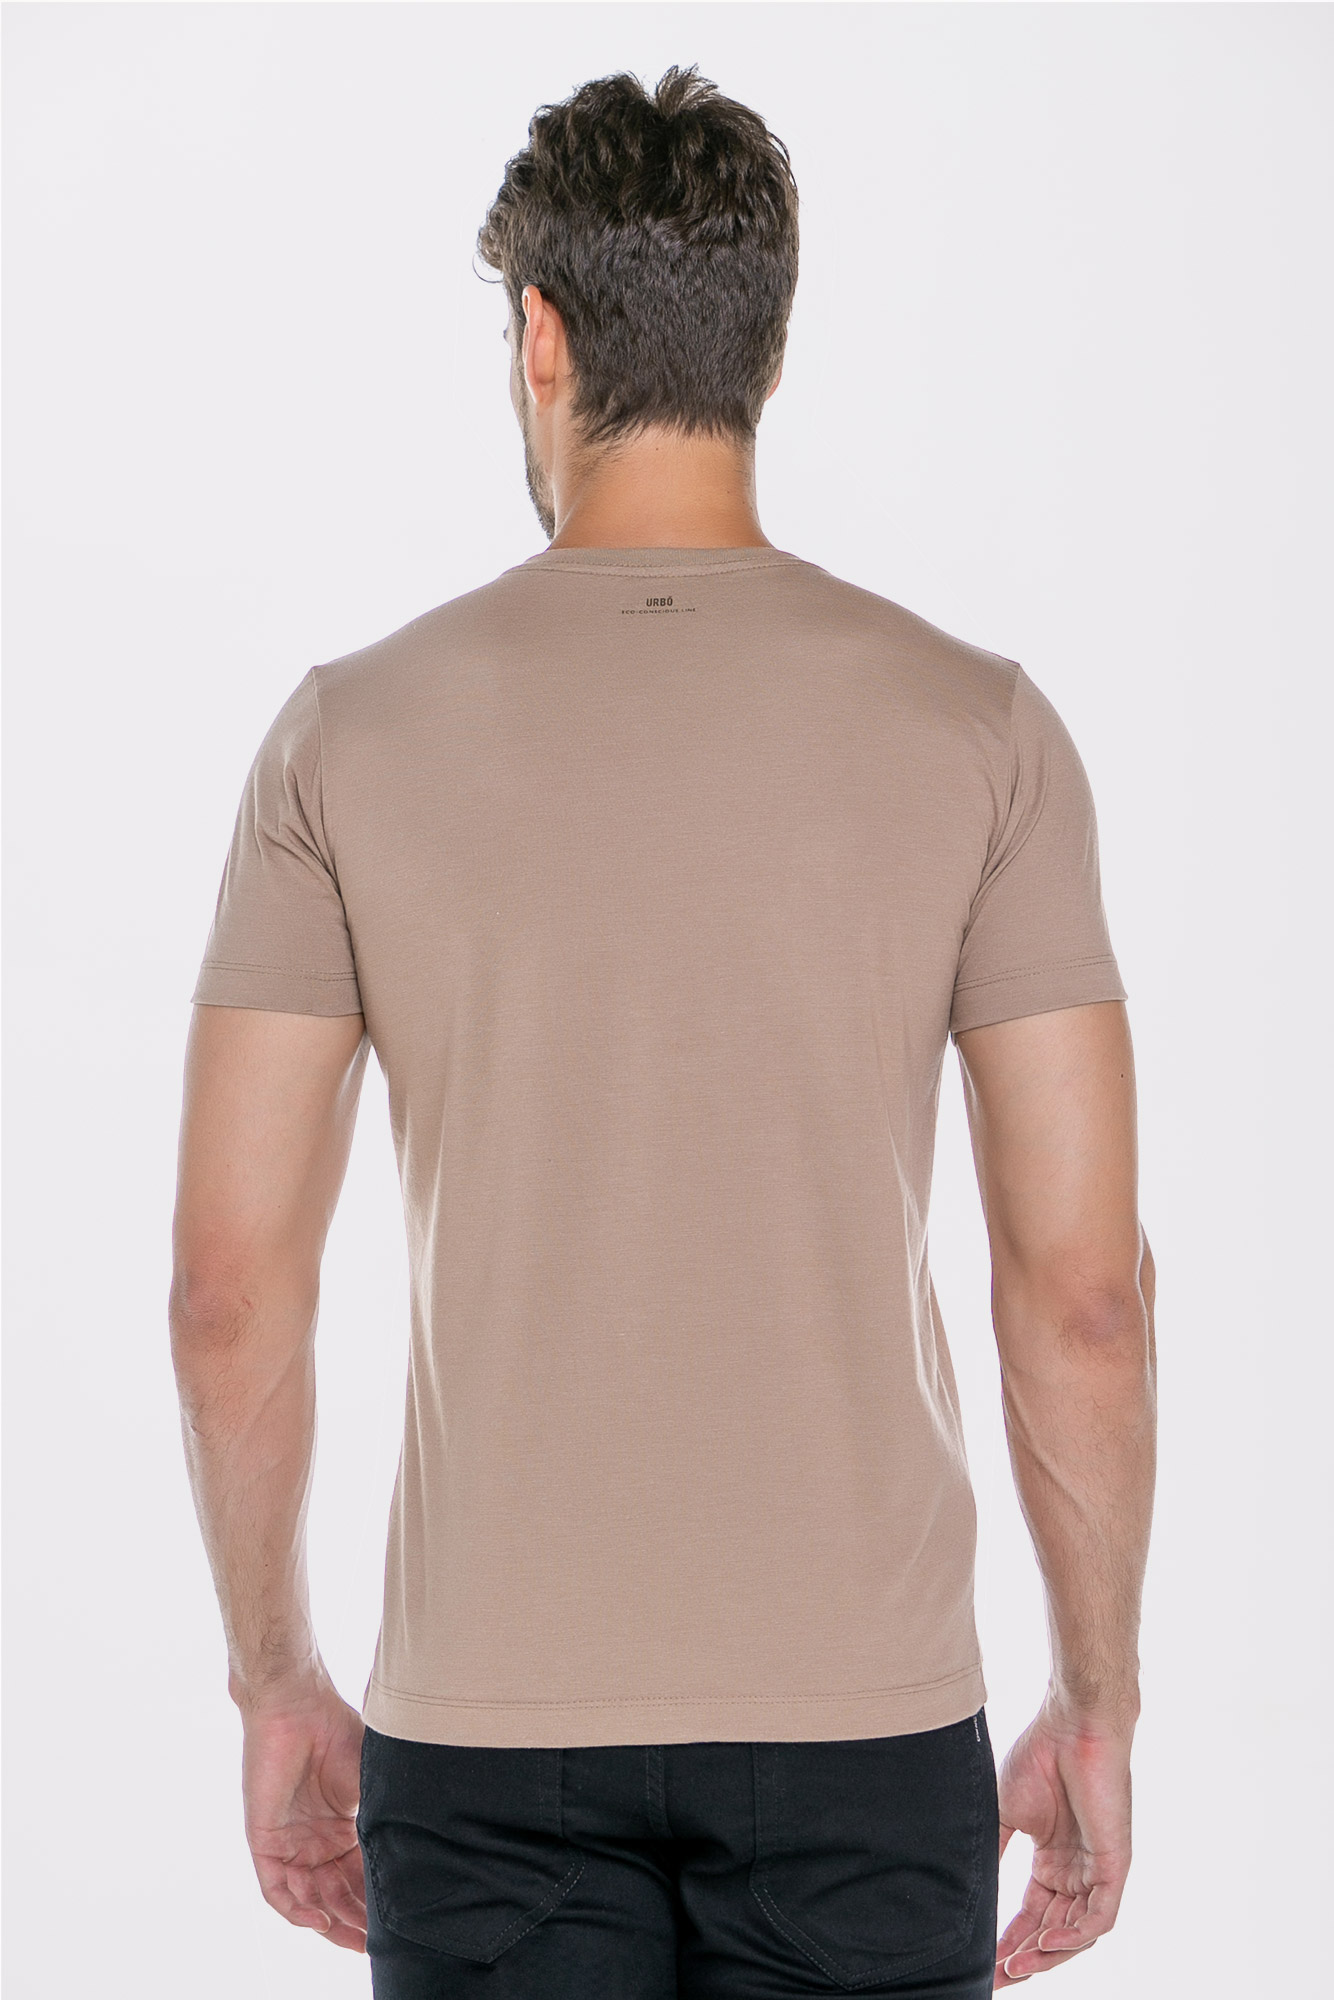 Camiseta After Coffee Bege